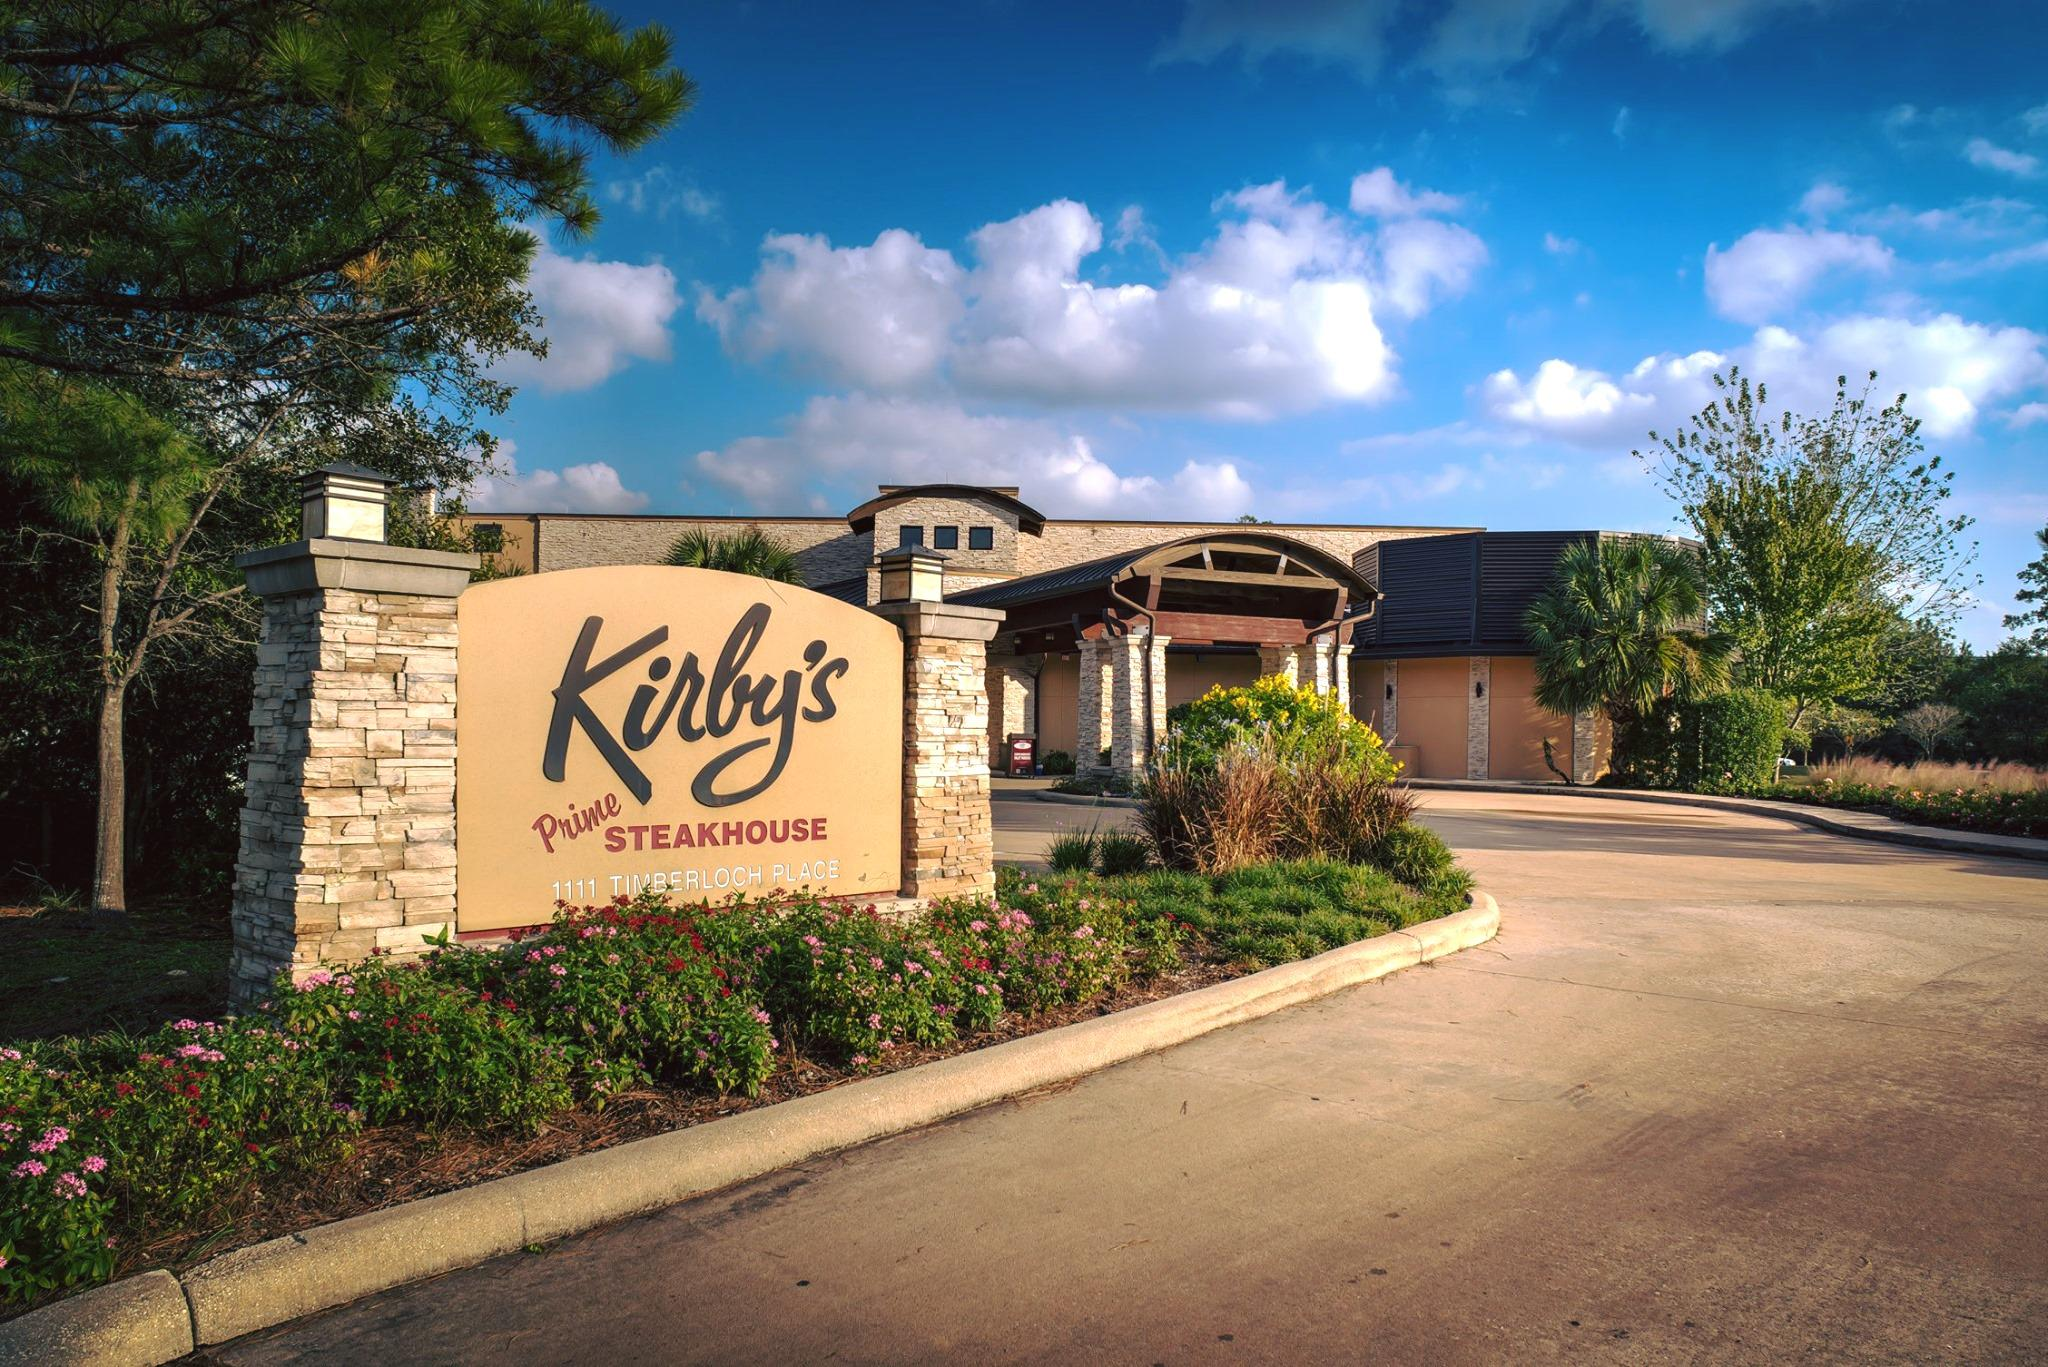 Kirby's Steakhouse image 0